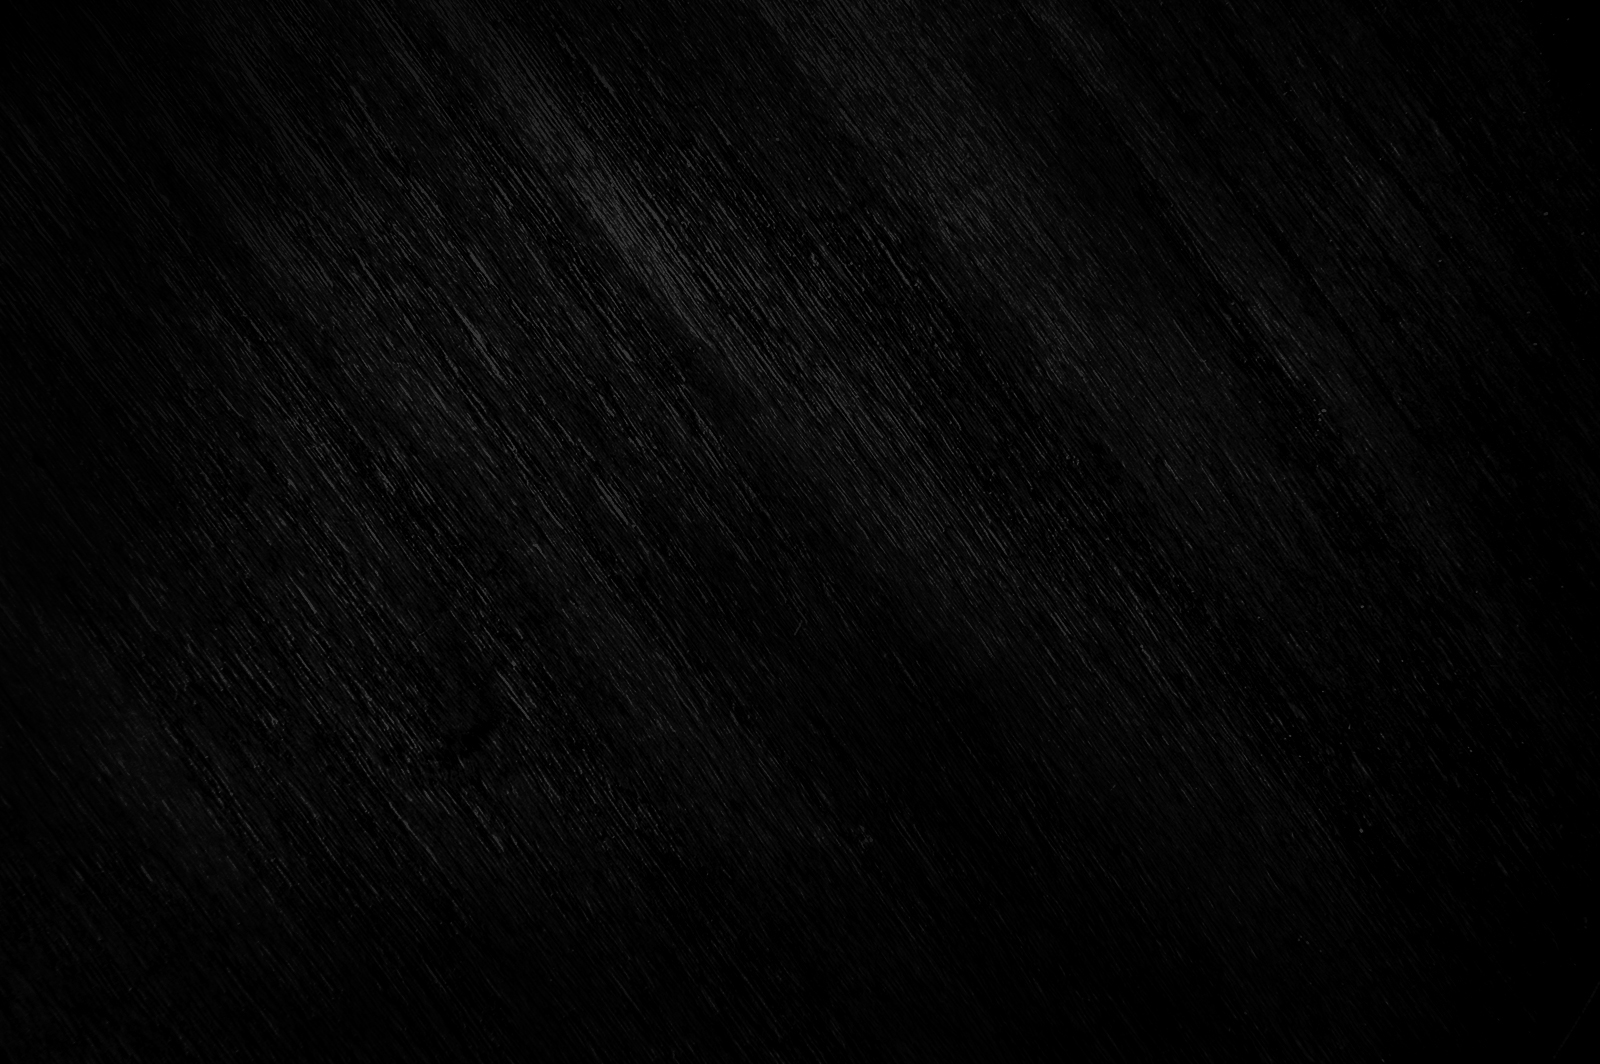 Black and gray backgrounds wallpapersafari - Dark gray background ...